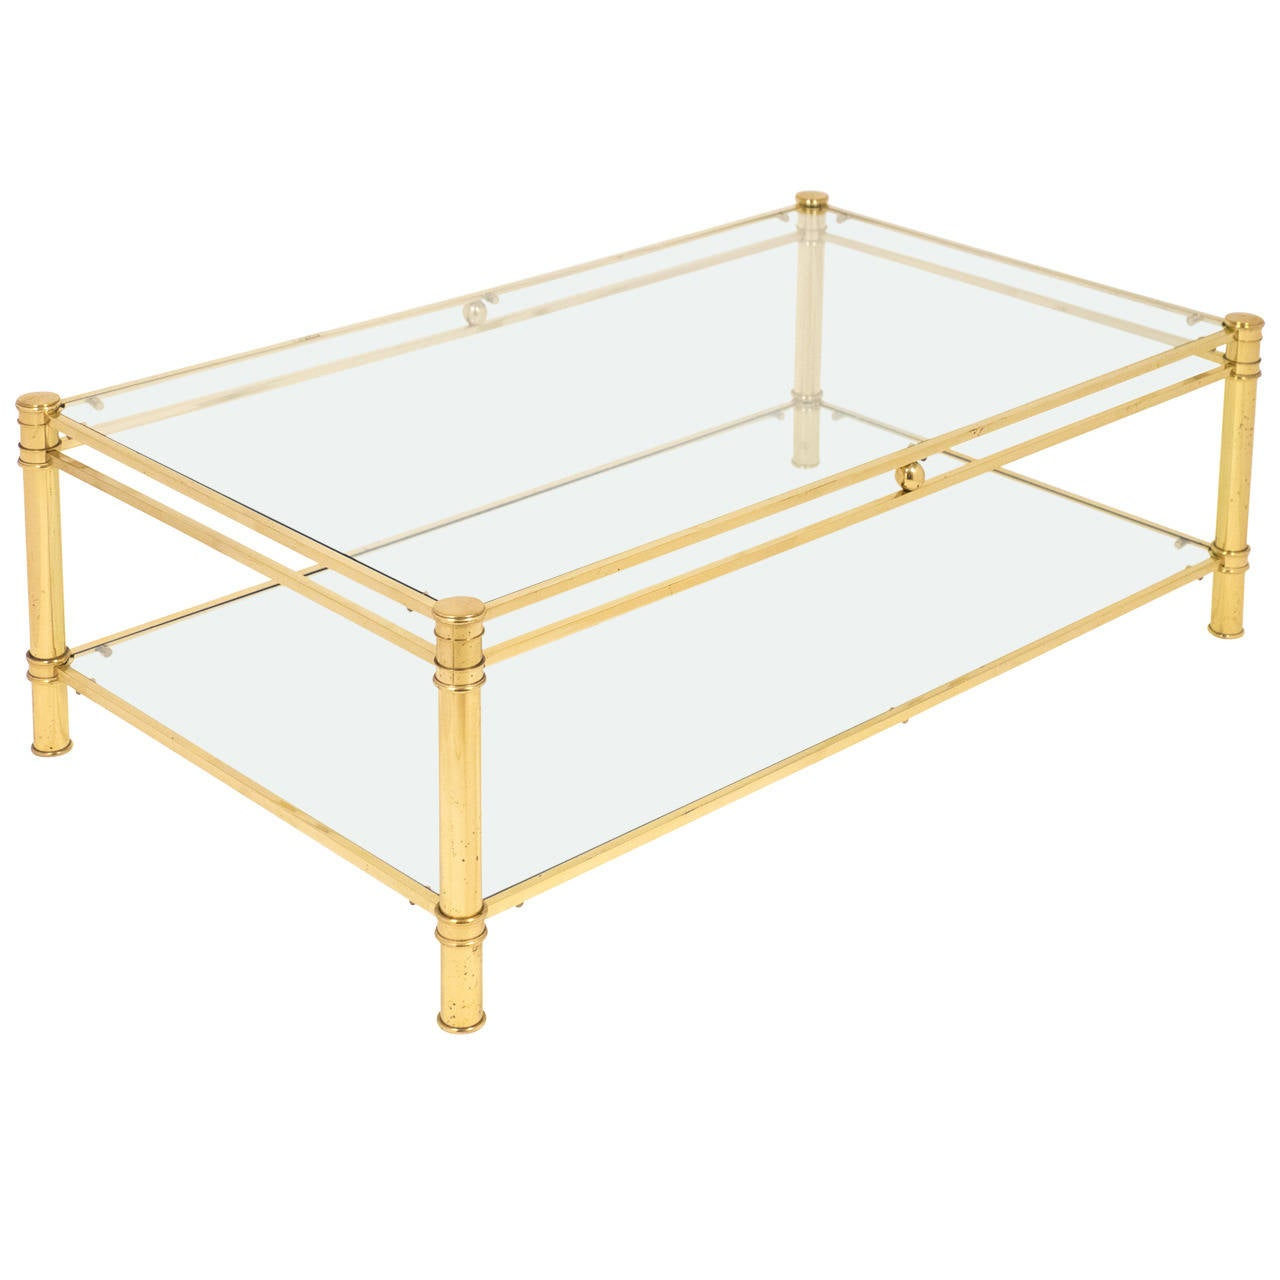 French Vintage Gilt Brass Coffee Table By Maison Raphael At 1stdibs